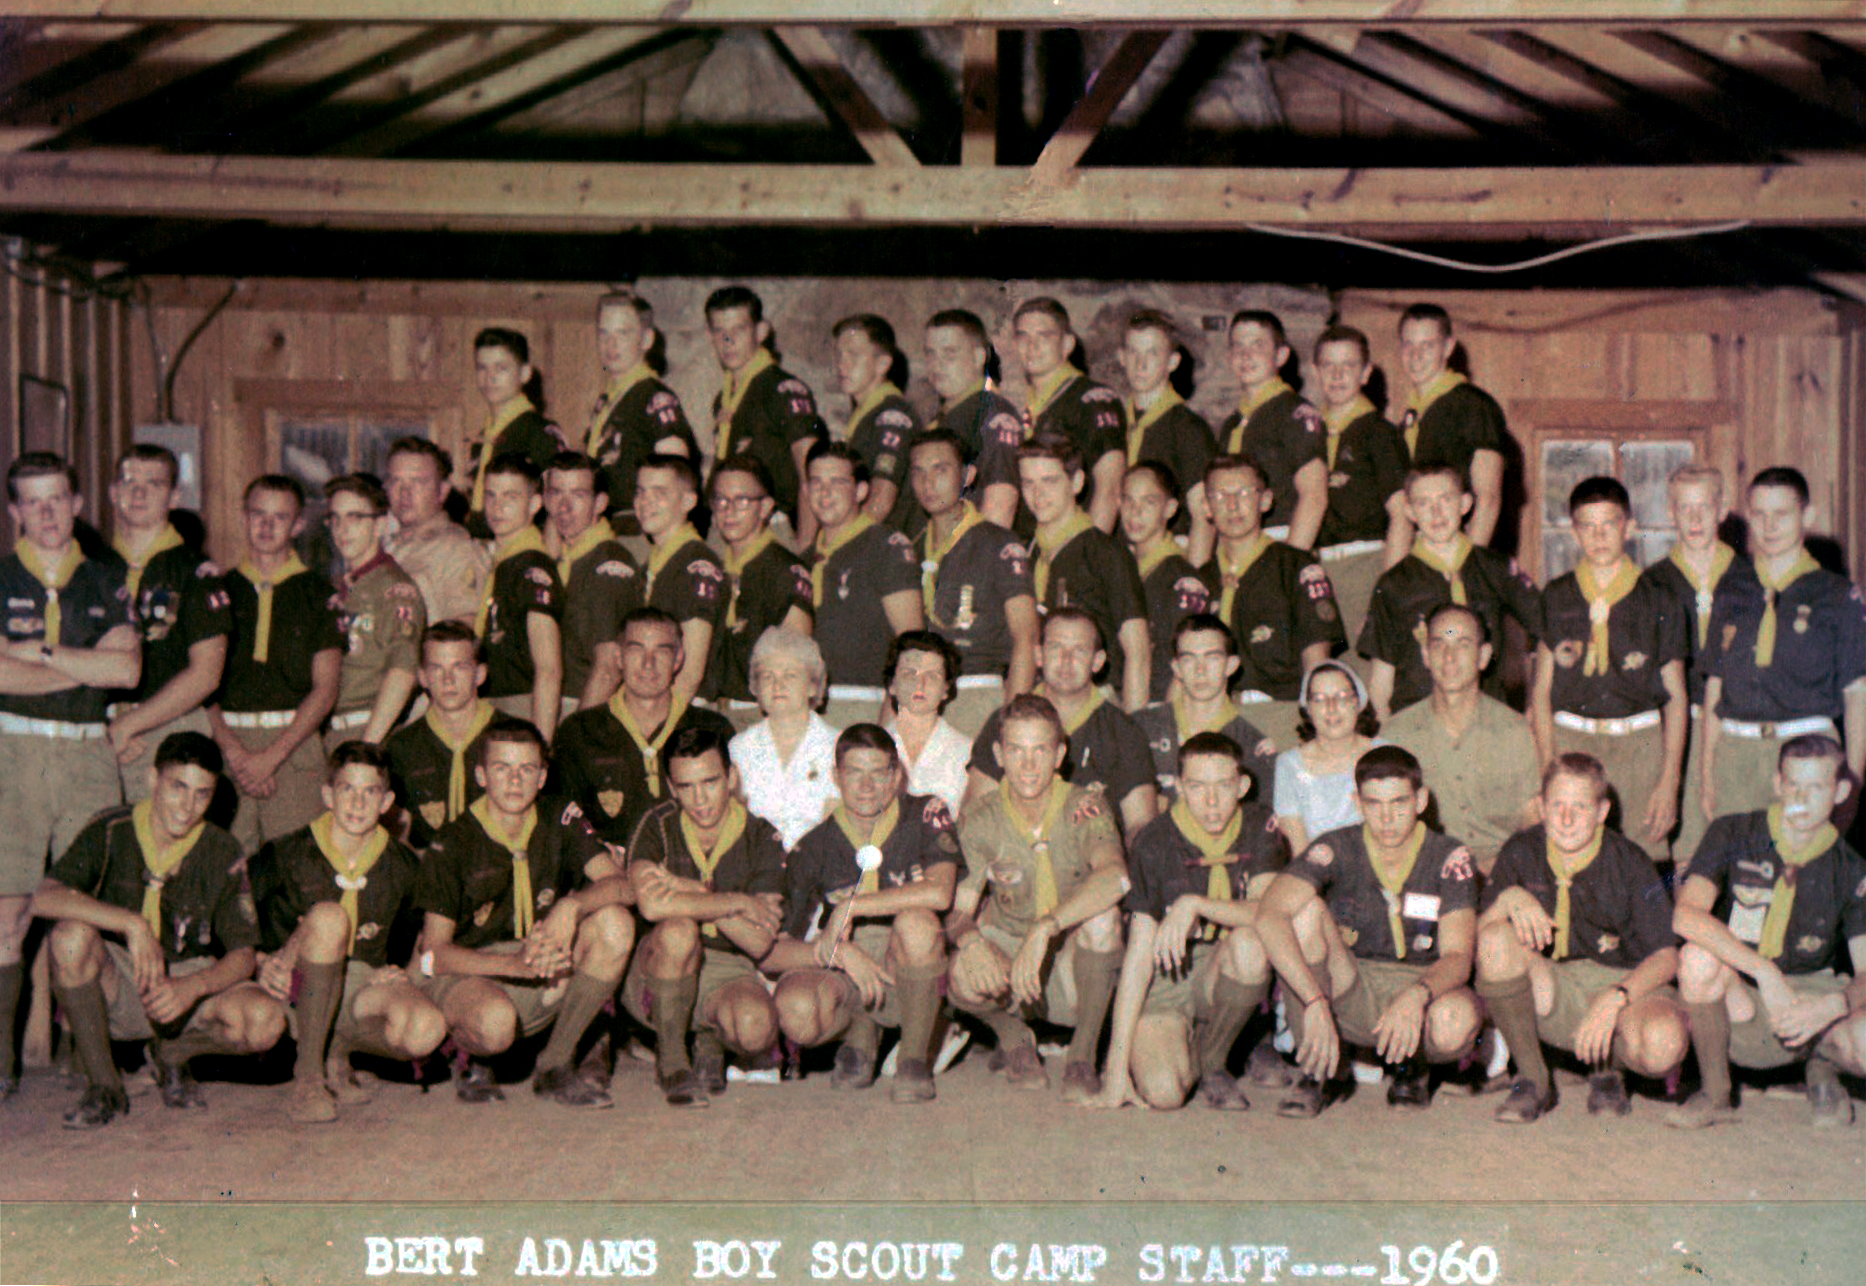 Bert Adams Summer Camp Staff 1960